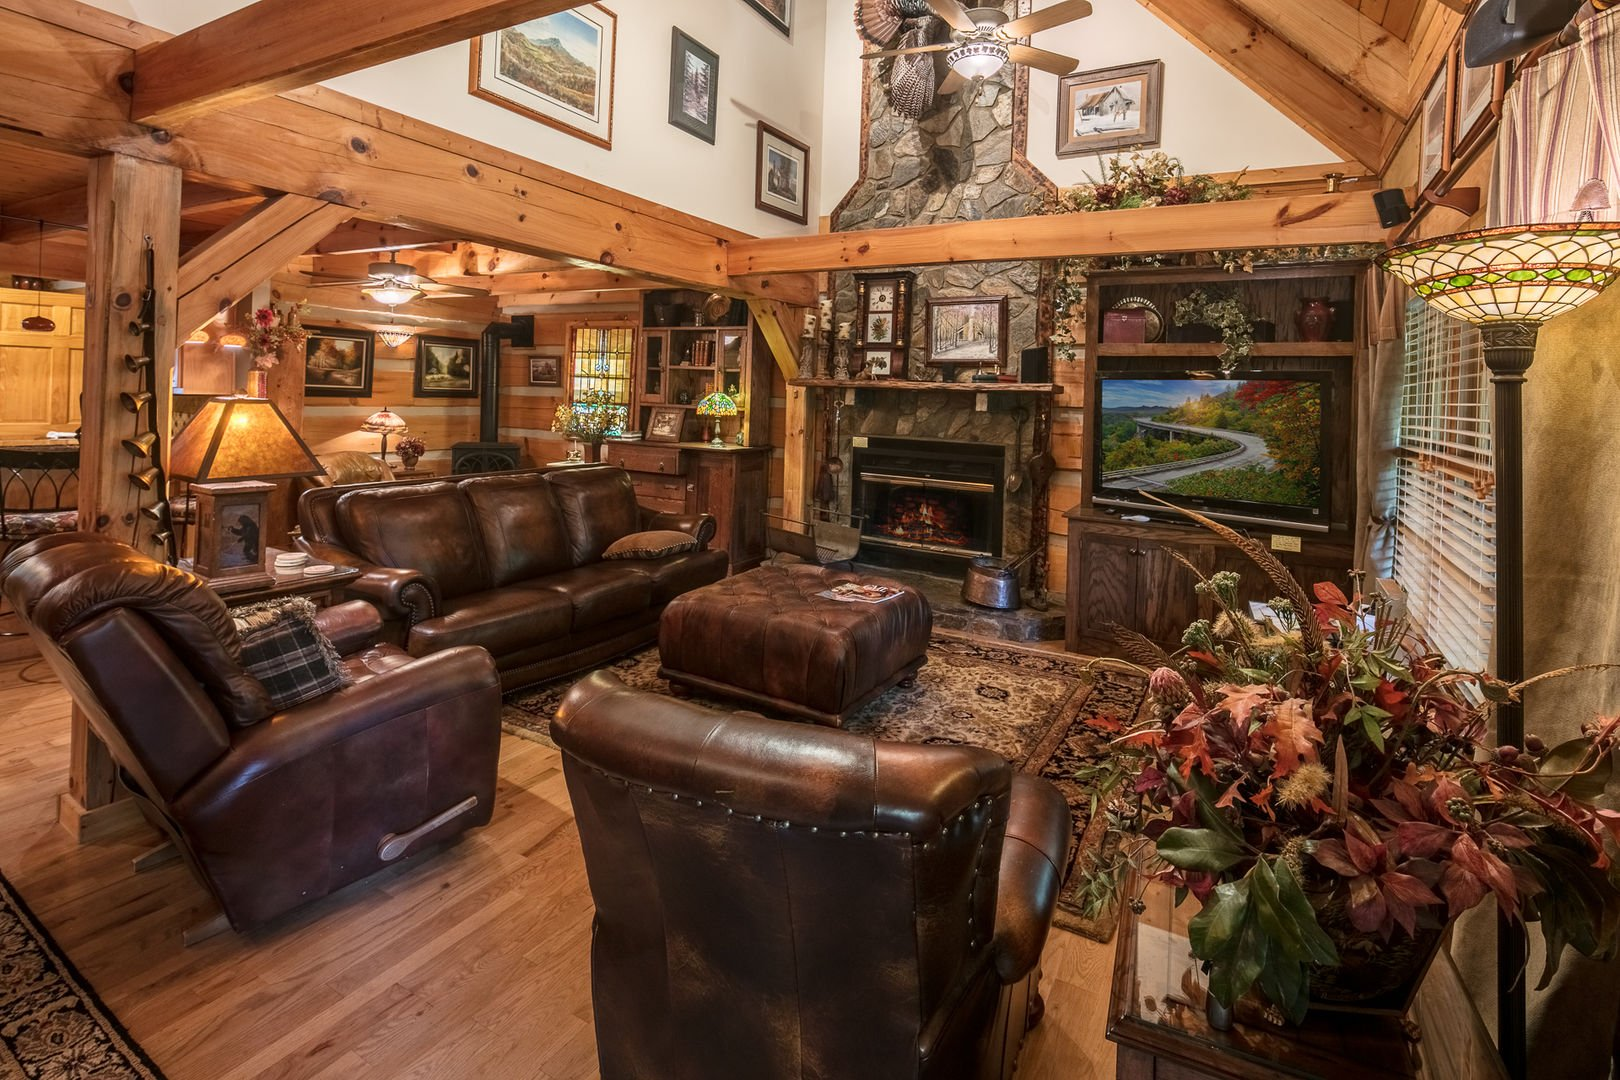 The living room has leather furniture and a cozy fireplace.  Almost Perfect in Blowing Rock, NC. #fireplace